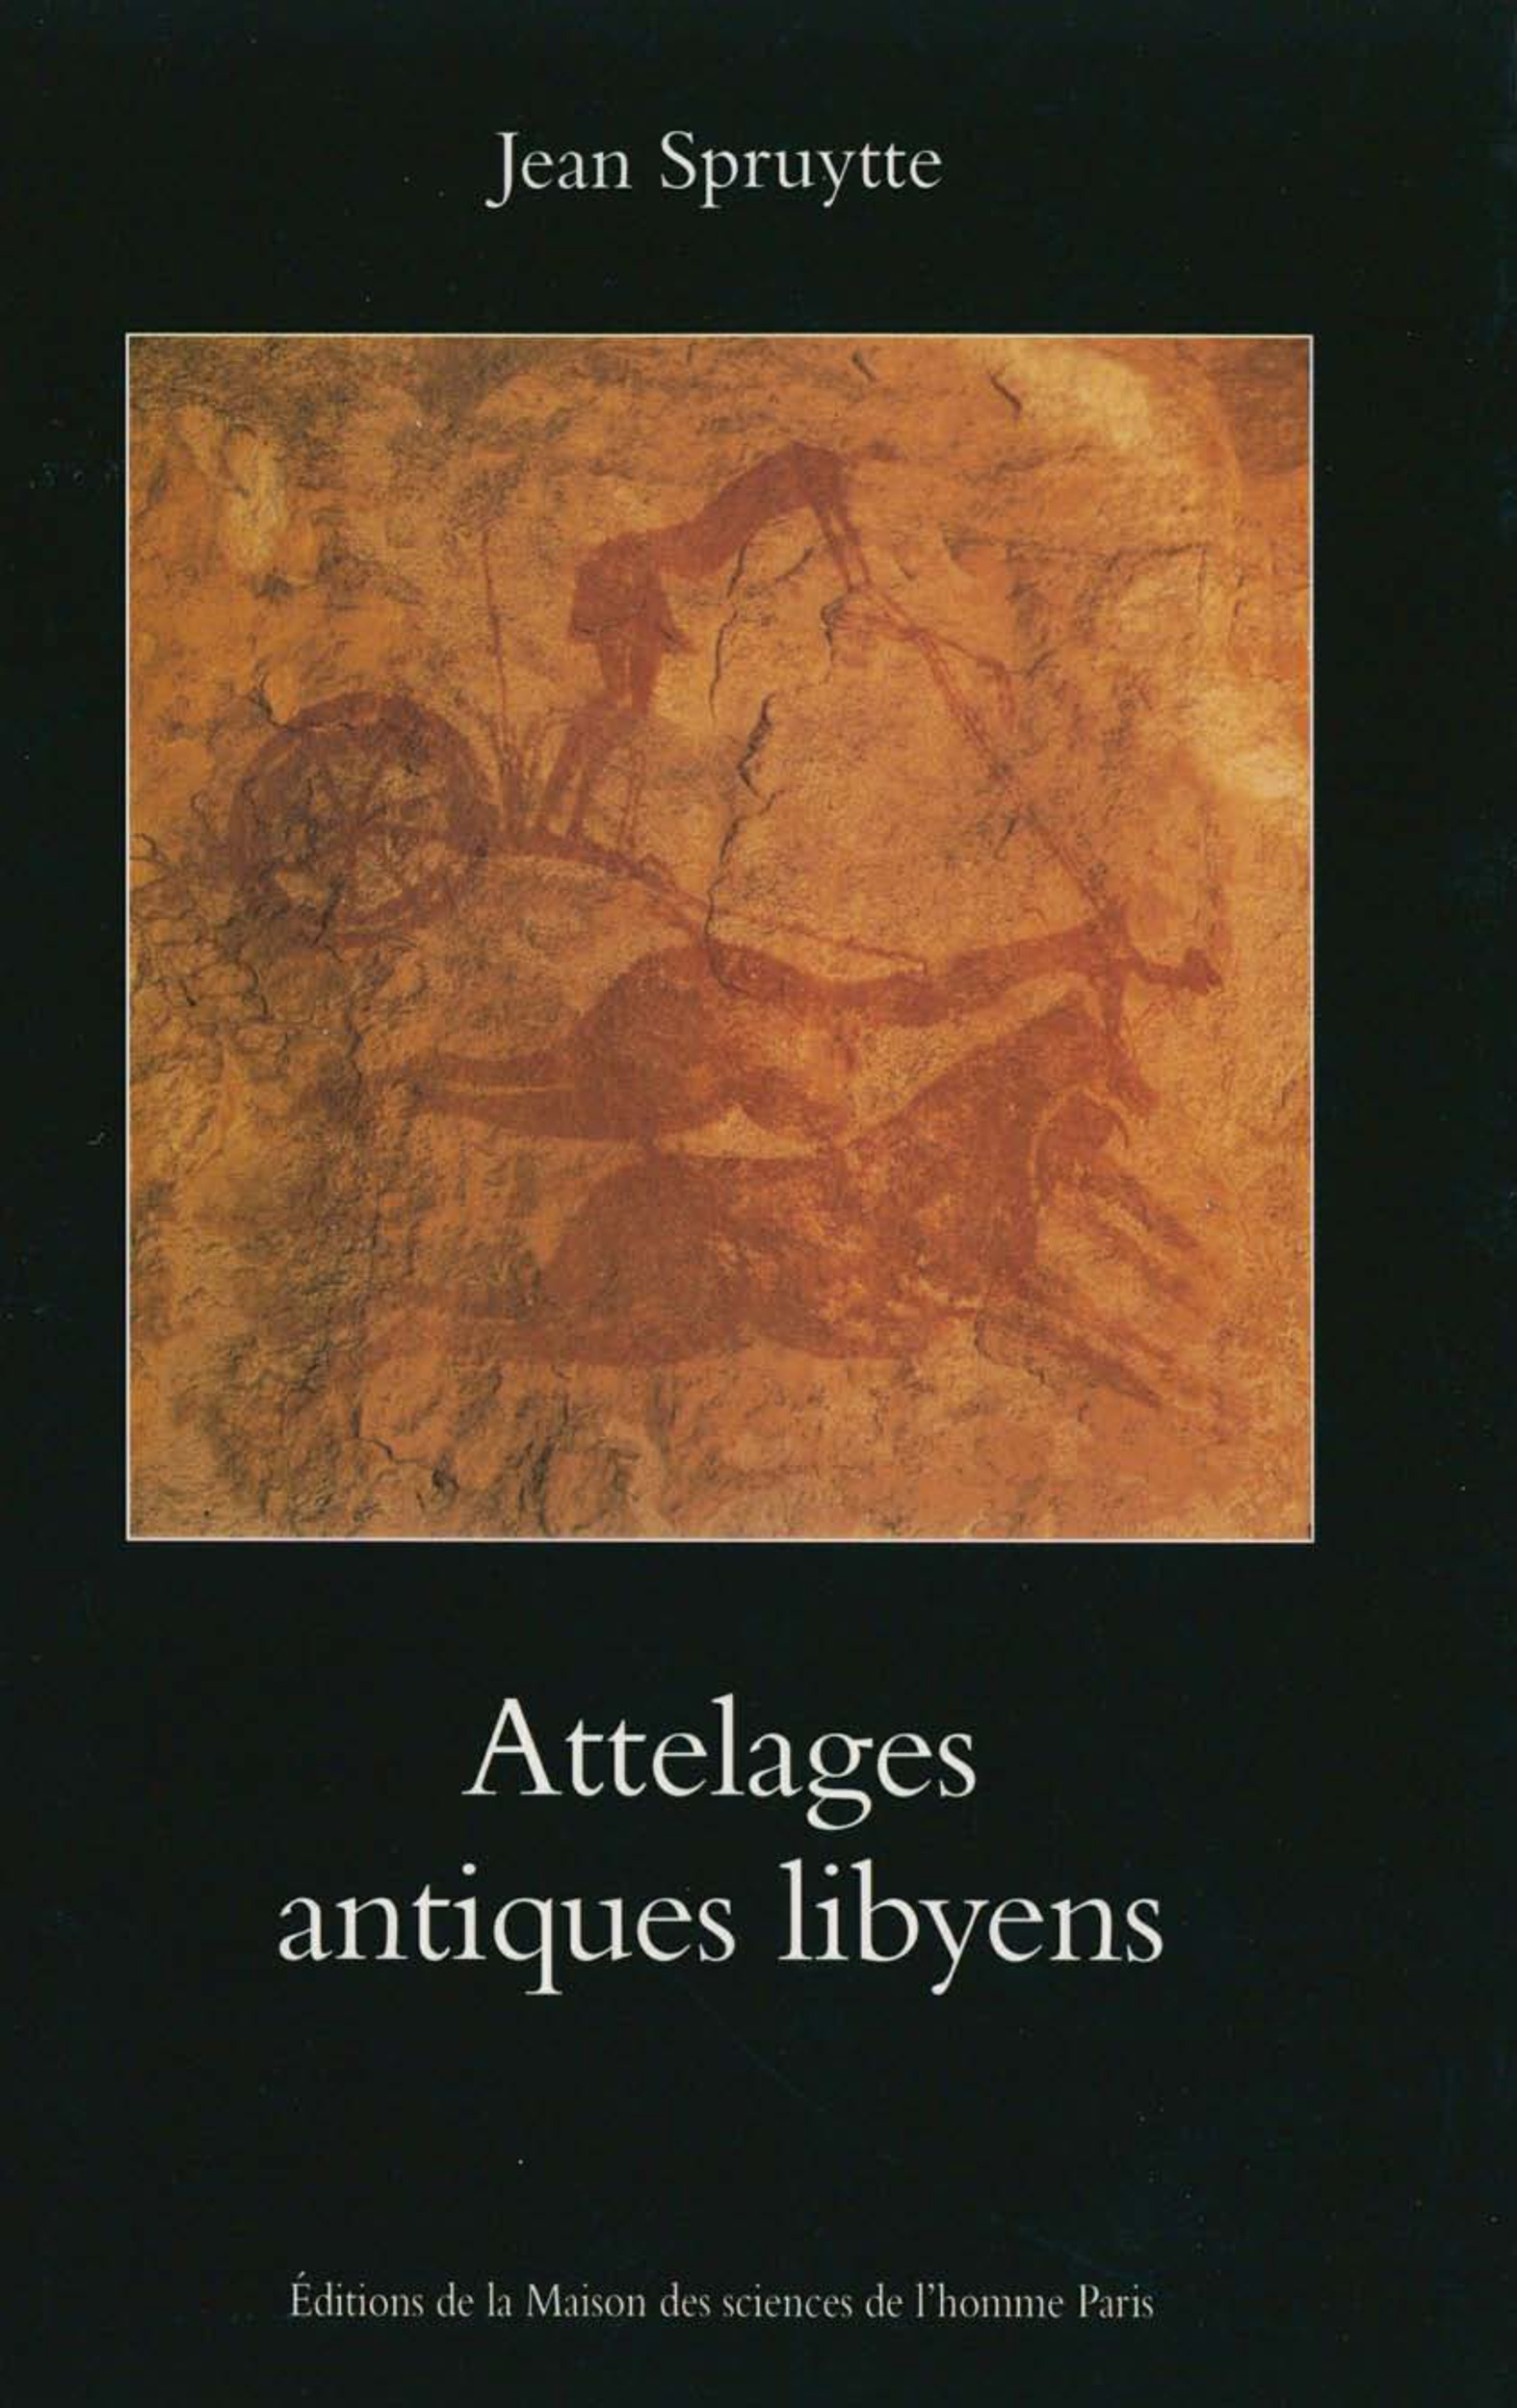 Jean Spruytte Attelages antiques libyens